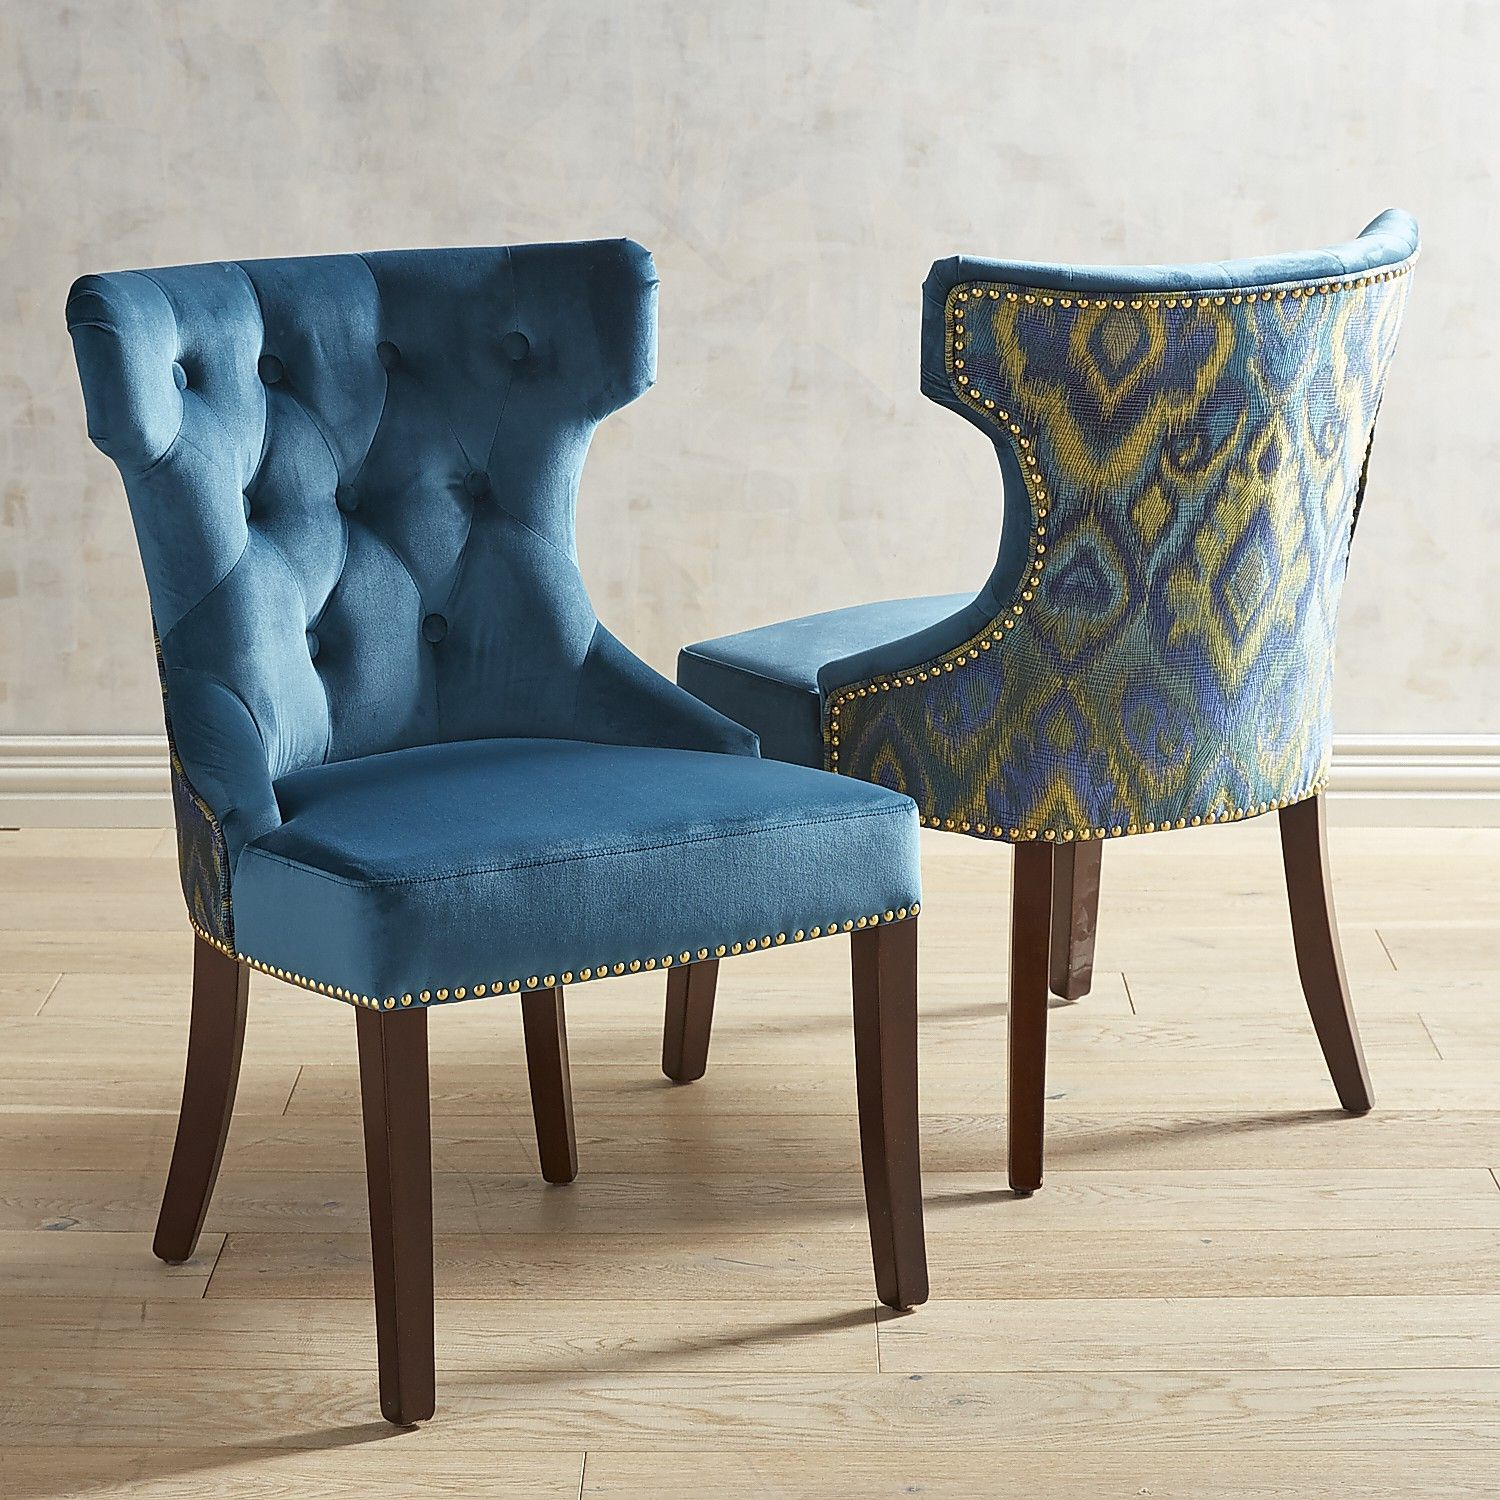 Hourglass plume teal dining chair with espresso wood